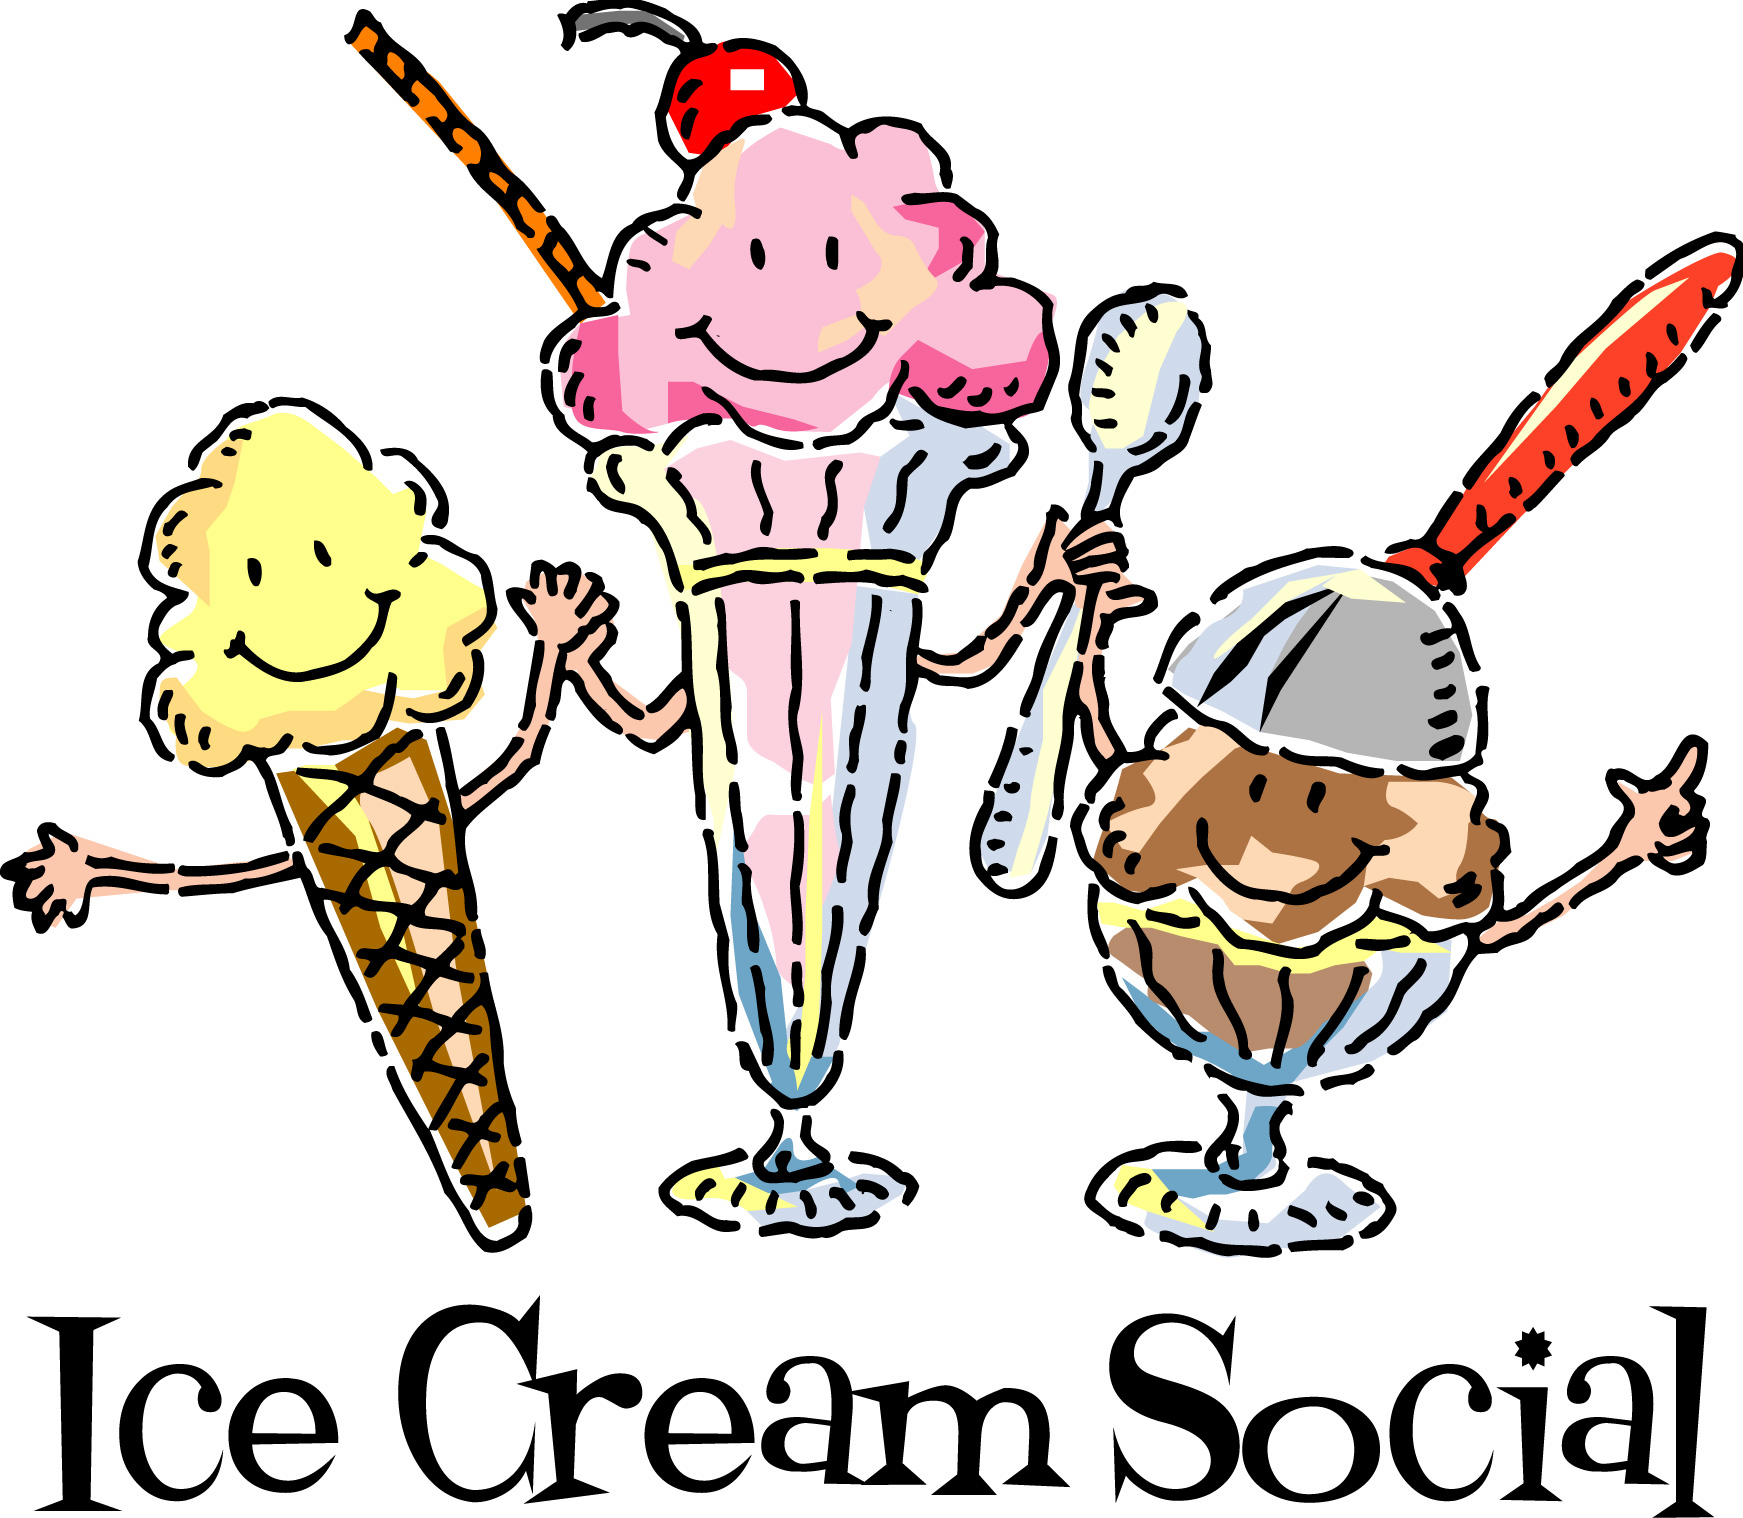 Social clipart picture royalty free stock Ice Cream Social Clip Art | Clipart Panda - Free Clipart Images picture royalty free stock